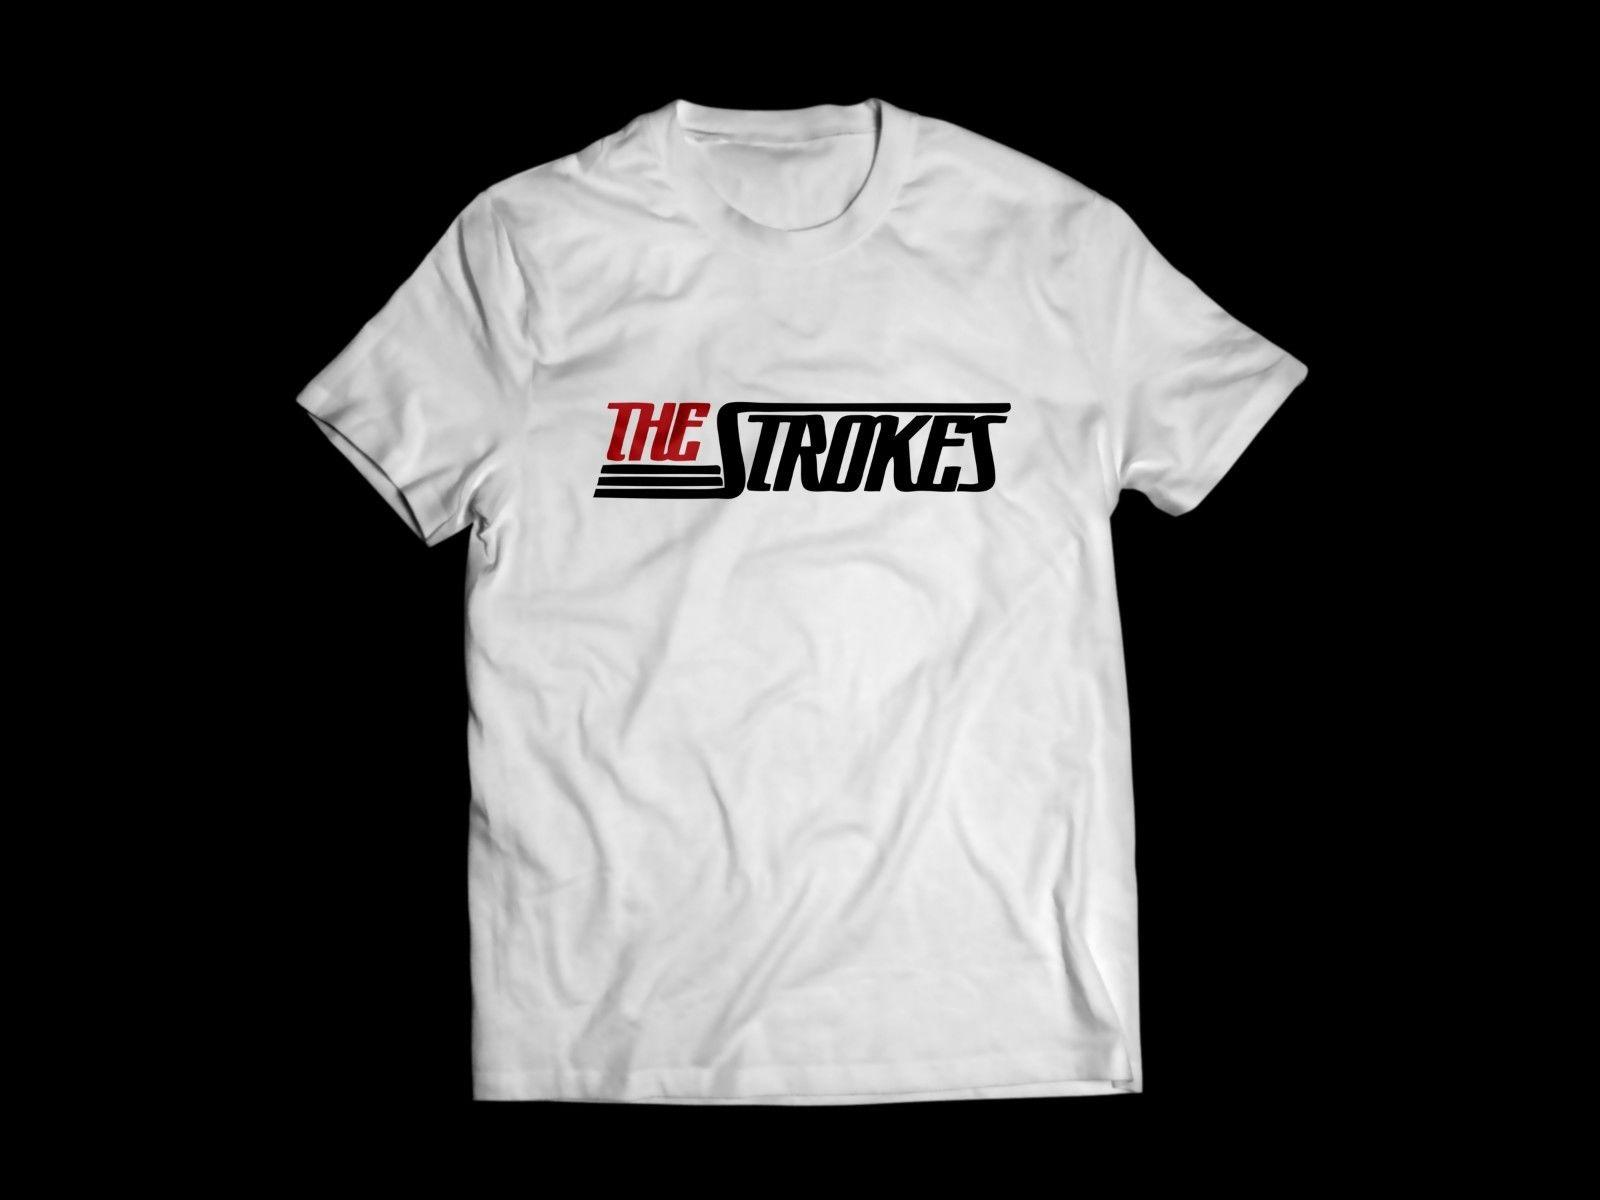 fbf8028e The Strokes Logo Band White T Shirt Music Tee Cool Casual Pride T Shirt Men  Unisex New Fashion Tshirt One Tee A Day Random Graphic Tees From  Cls6688521, ...